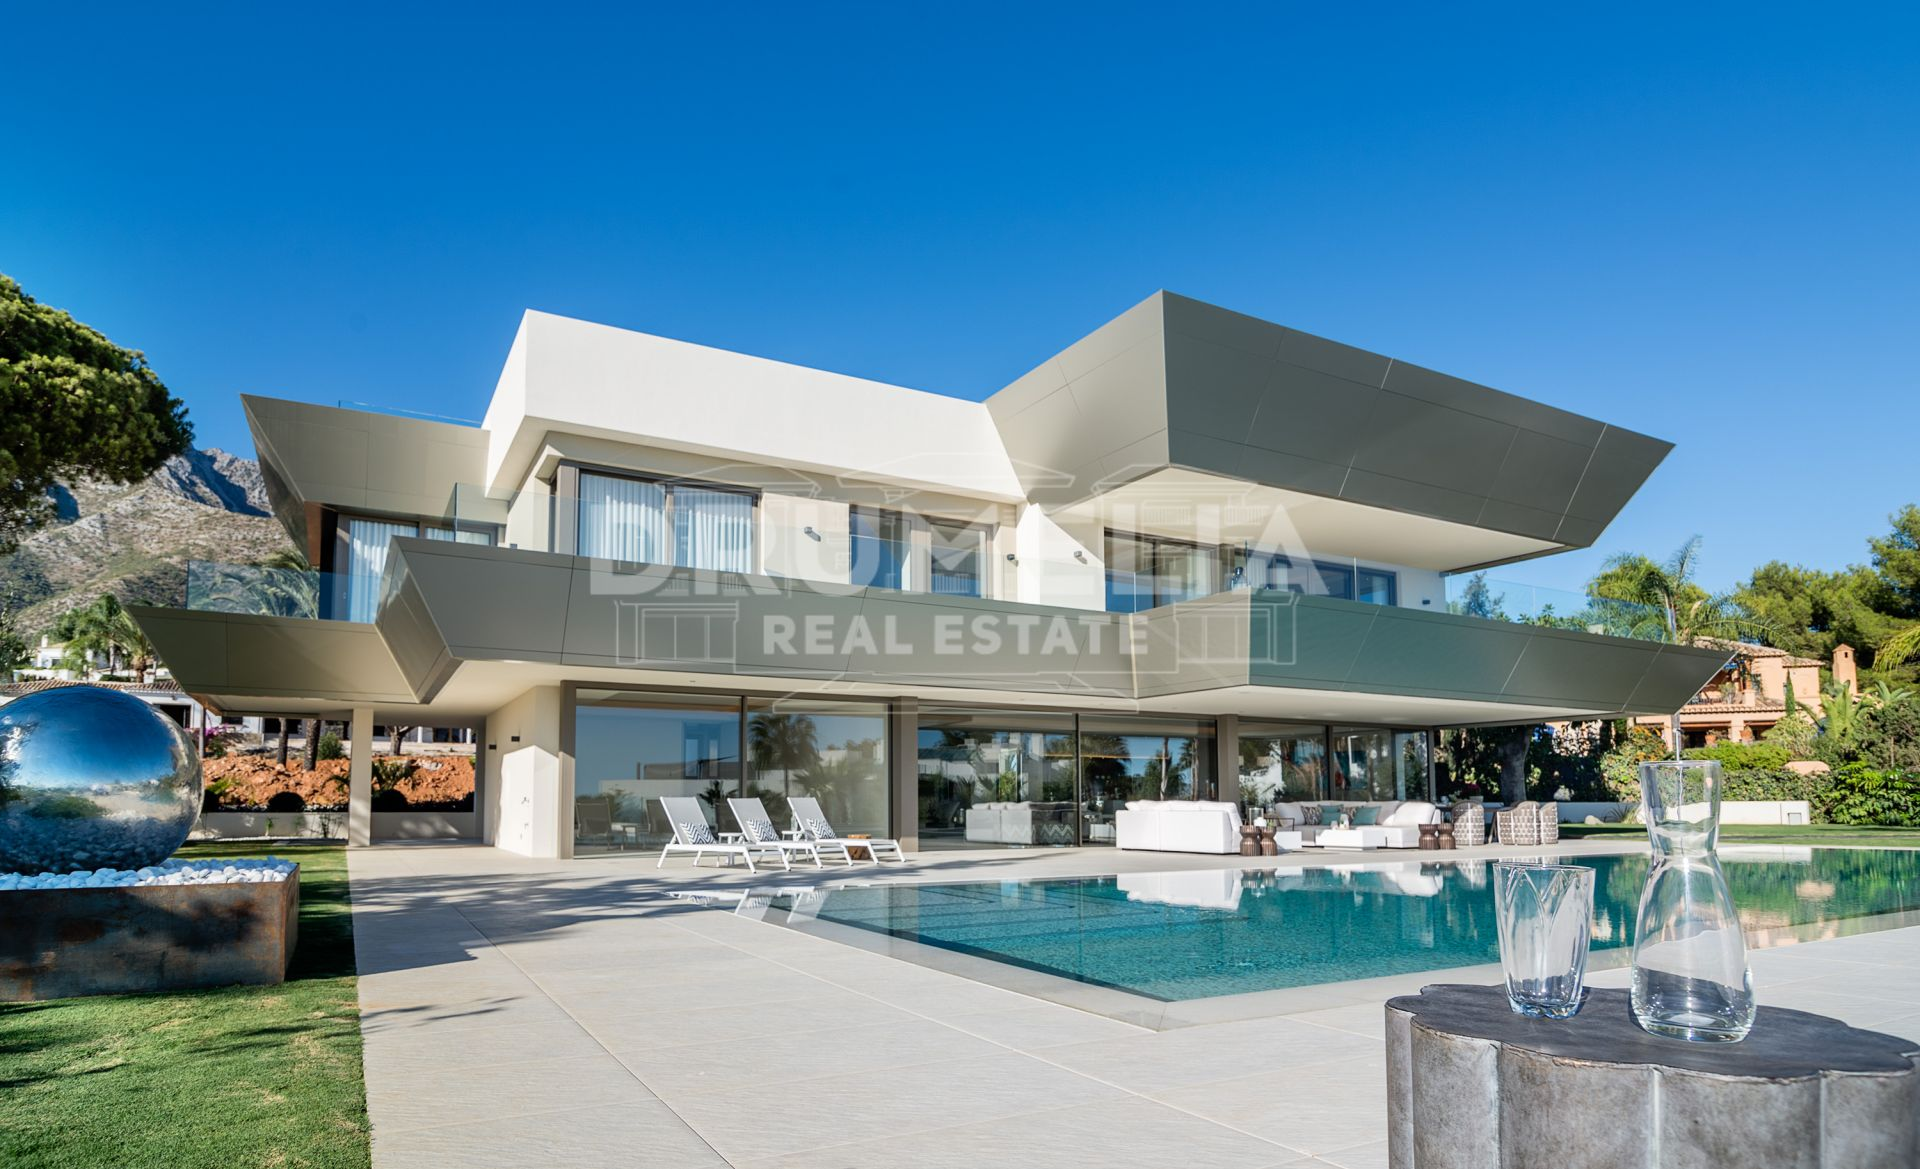 Marbella Golden Mile, Unique and Spectacular New High-Tech Contemporary Villa, Nagüeles, Marbella Golden Mile (Marbella)